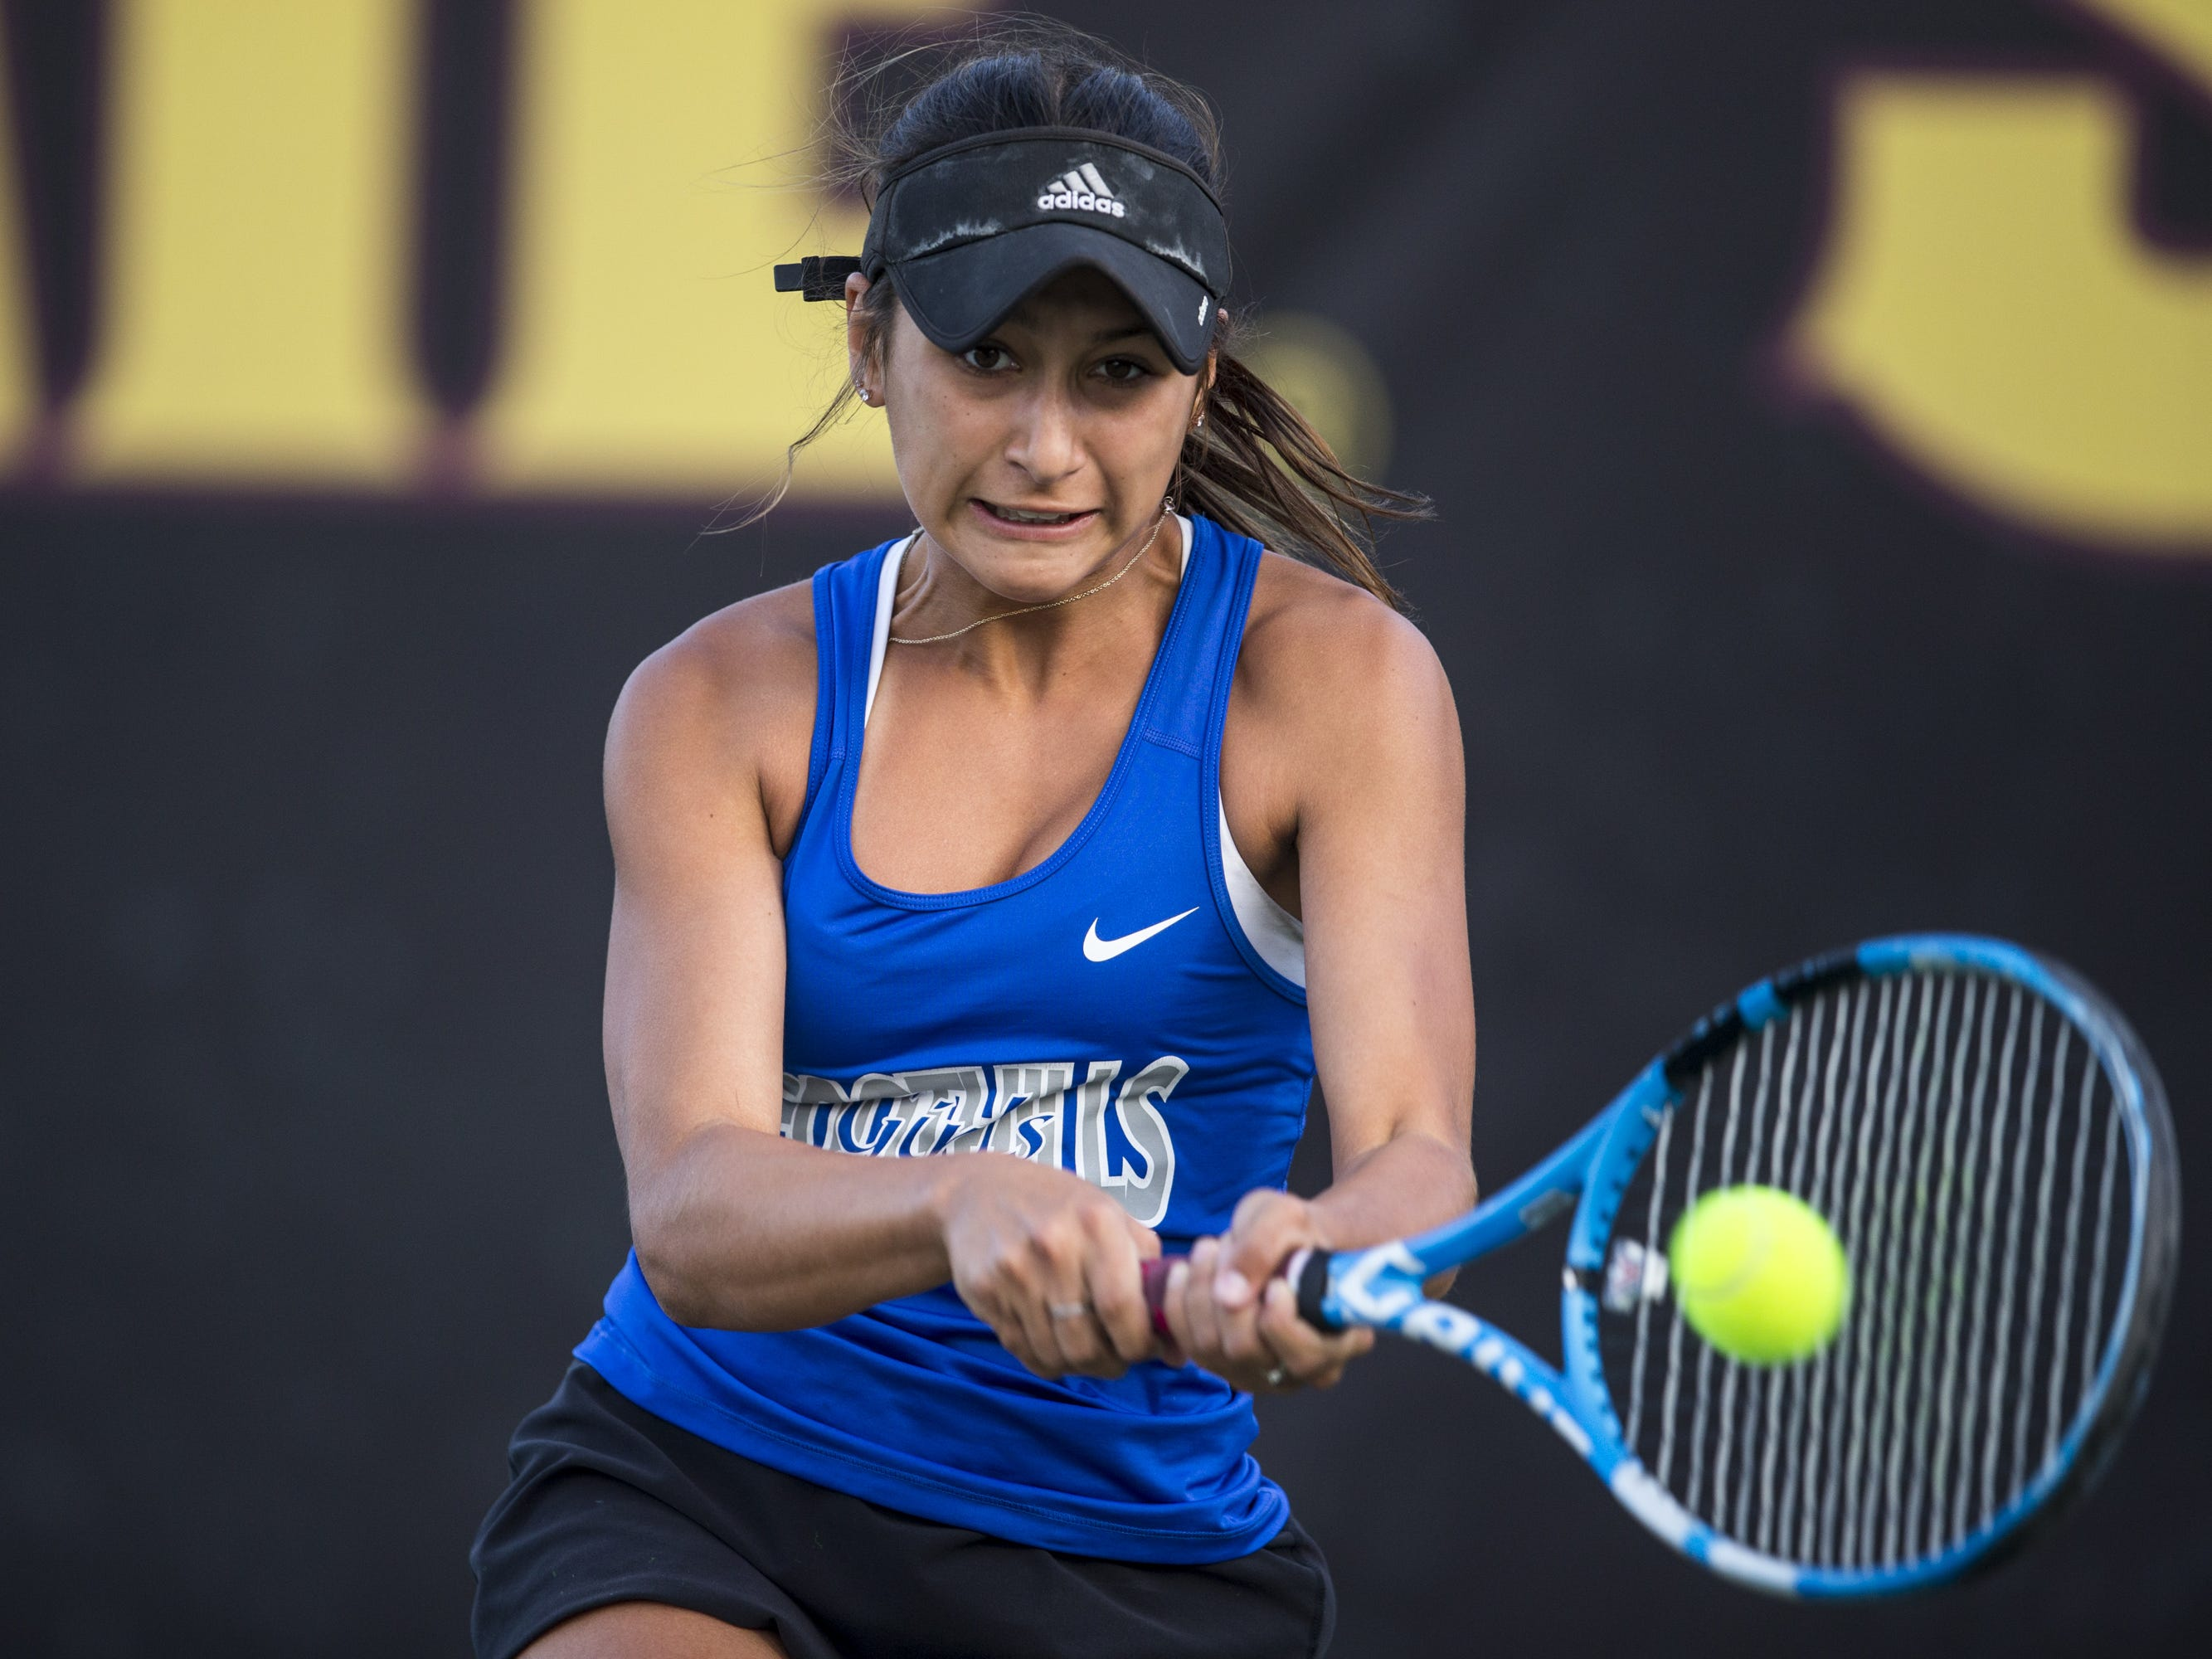 Catalina Foothills' Emily Flowers returns the ball against Catalina Foothills' Annabelle Mulick during the Division II Girls Tennis Singles State Championship on Monday, April 29, 2019, at Whiteman Tennis Center in Tempe, Ariz.